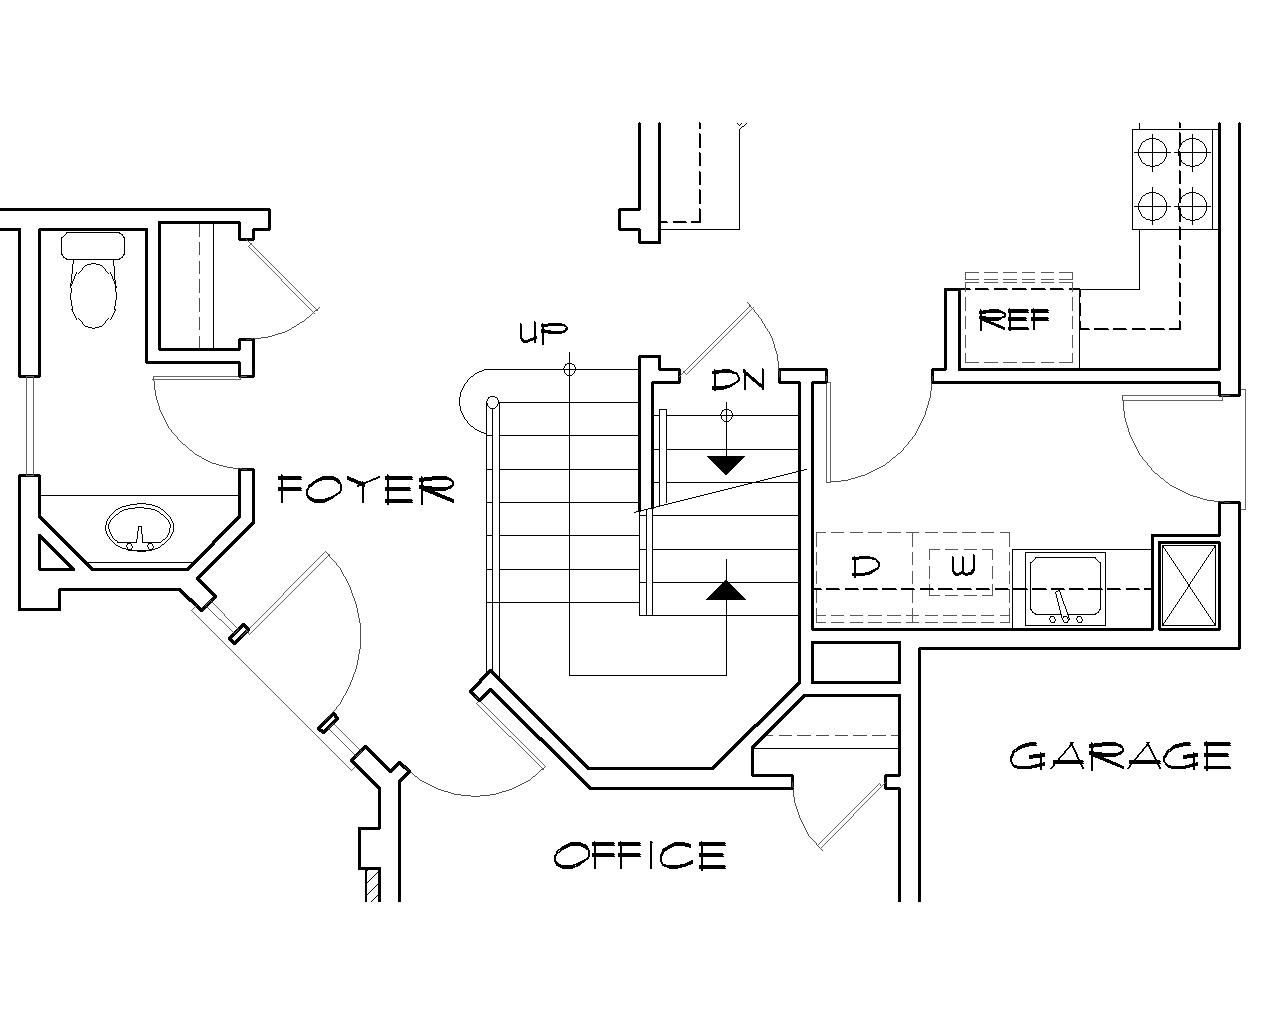 Plan  Elevation  Section further 3d House Plans likewise Casestudy Of Falling Water as well Floor Plan Scheme Heavenly In Modern House Interior Design House Architecture also 8 Marla House Plan Design. on front of house elevation drawing